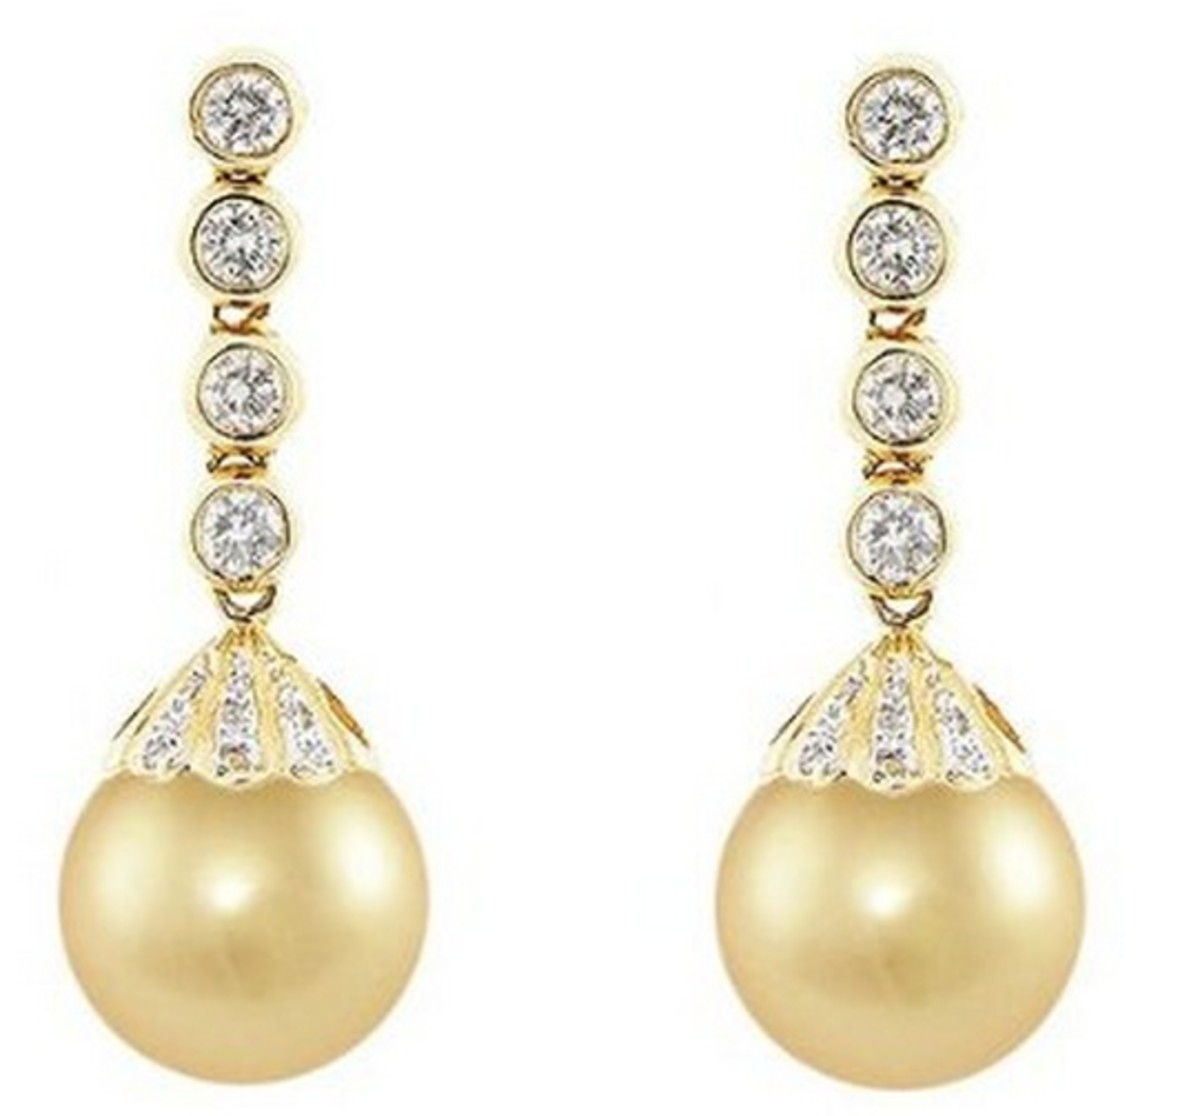 Vintage Look Golden South Sea Pearl Dangle Earrings. Golden South Sea Pearl Earrings You Will Love.